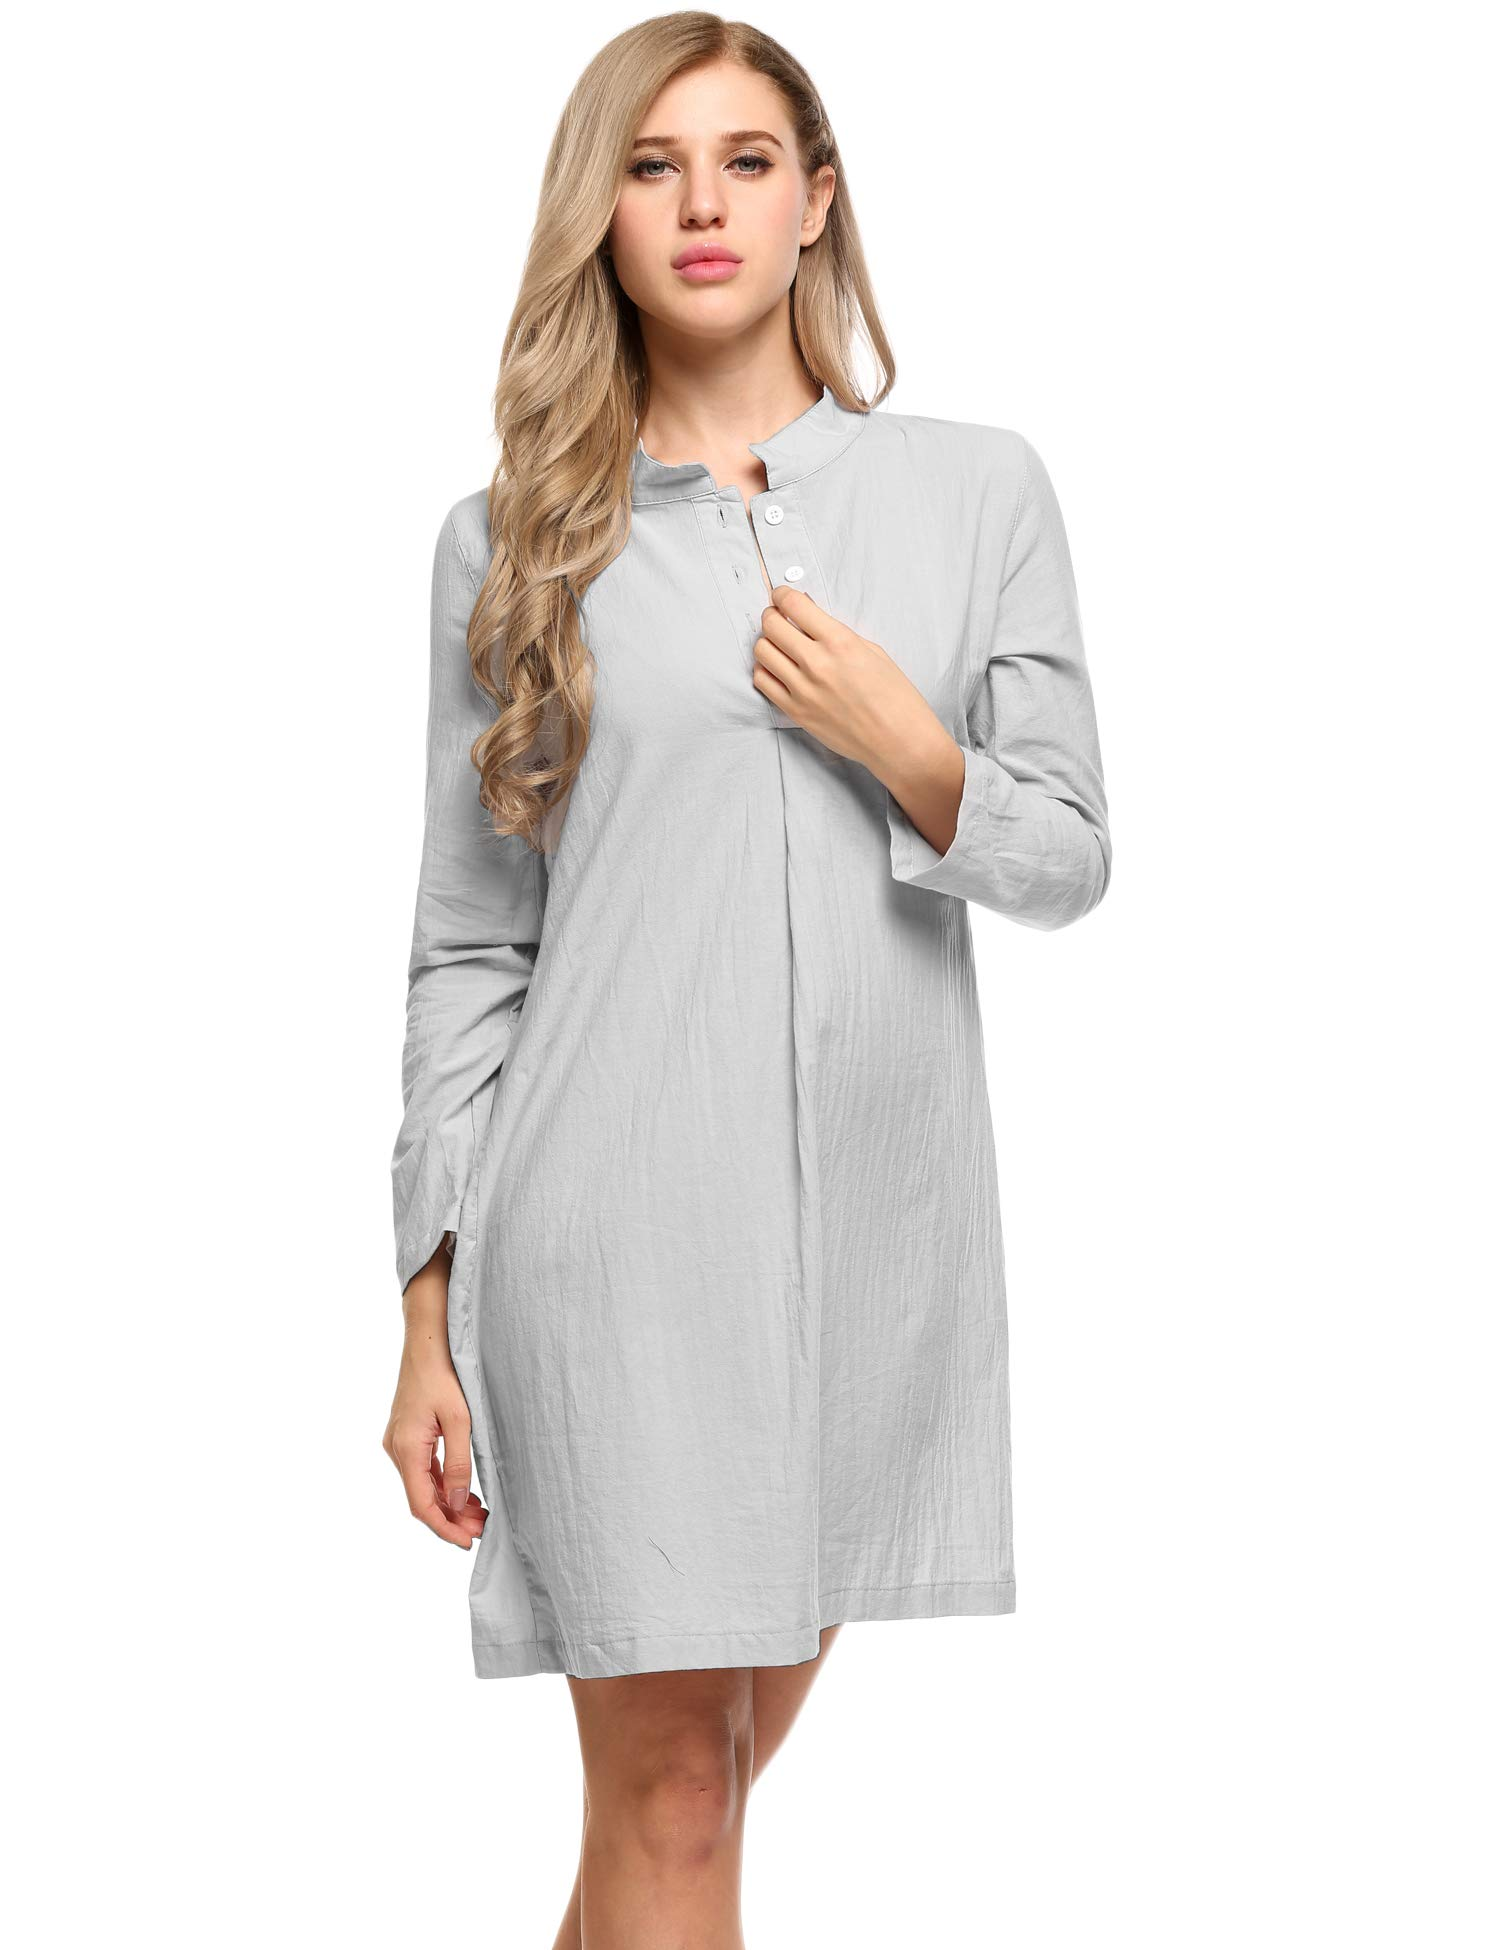 Ekouaer Women Bofriend Sleepwear 3/4 Sleeve Nightgown Pajama Top Buttom Up Nightshirt with Front Pocket S-XL